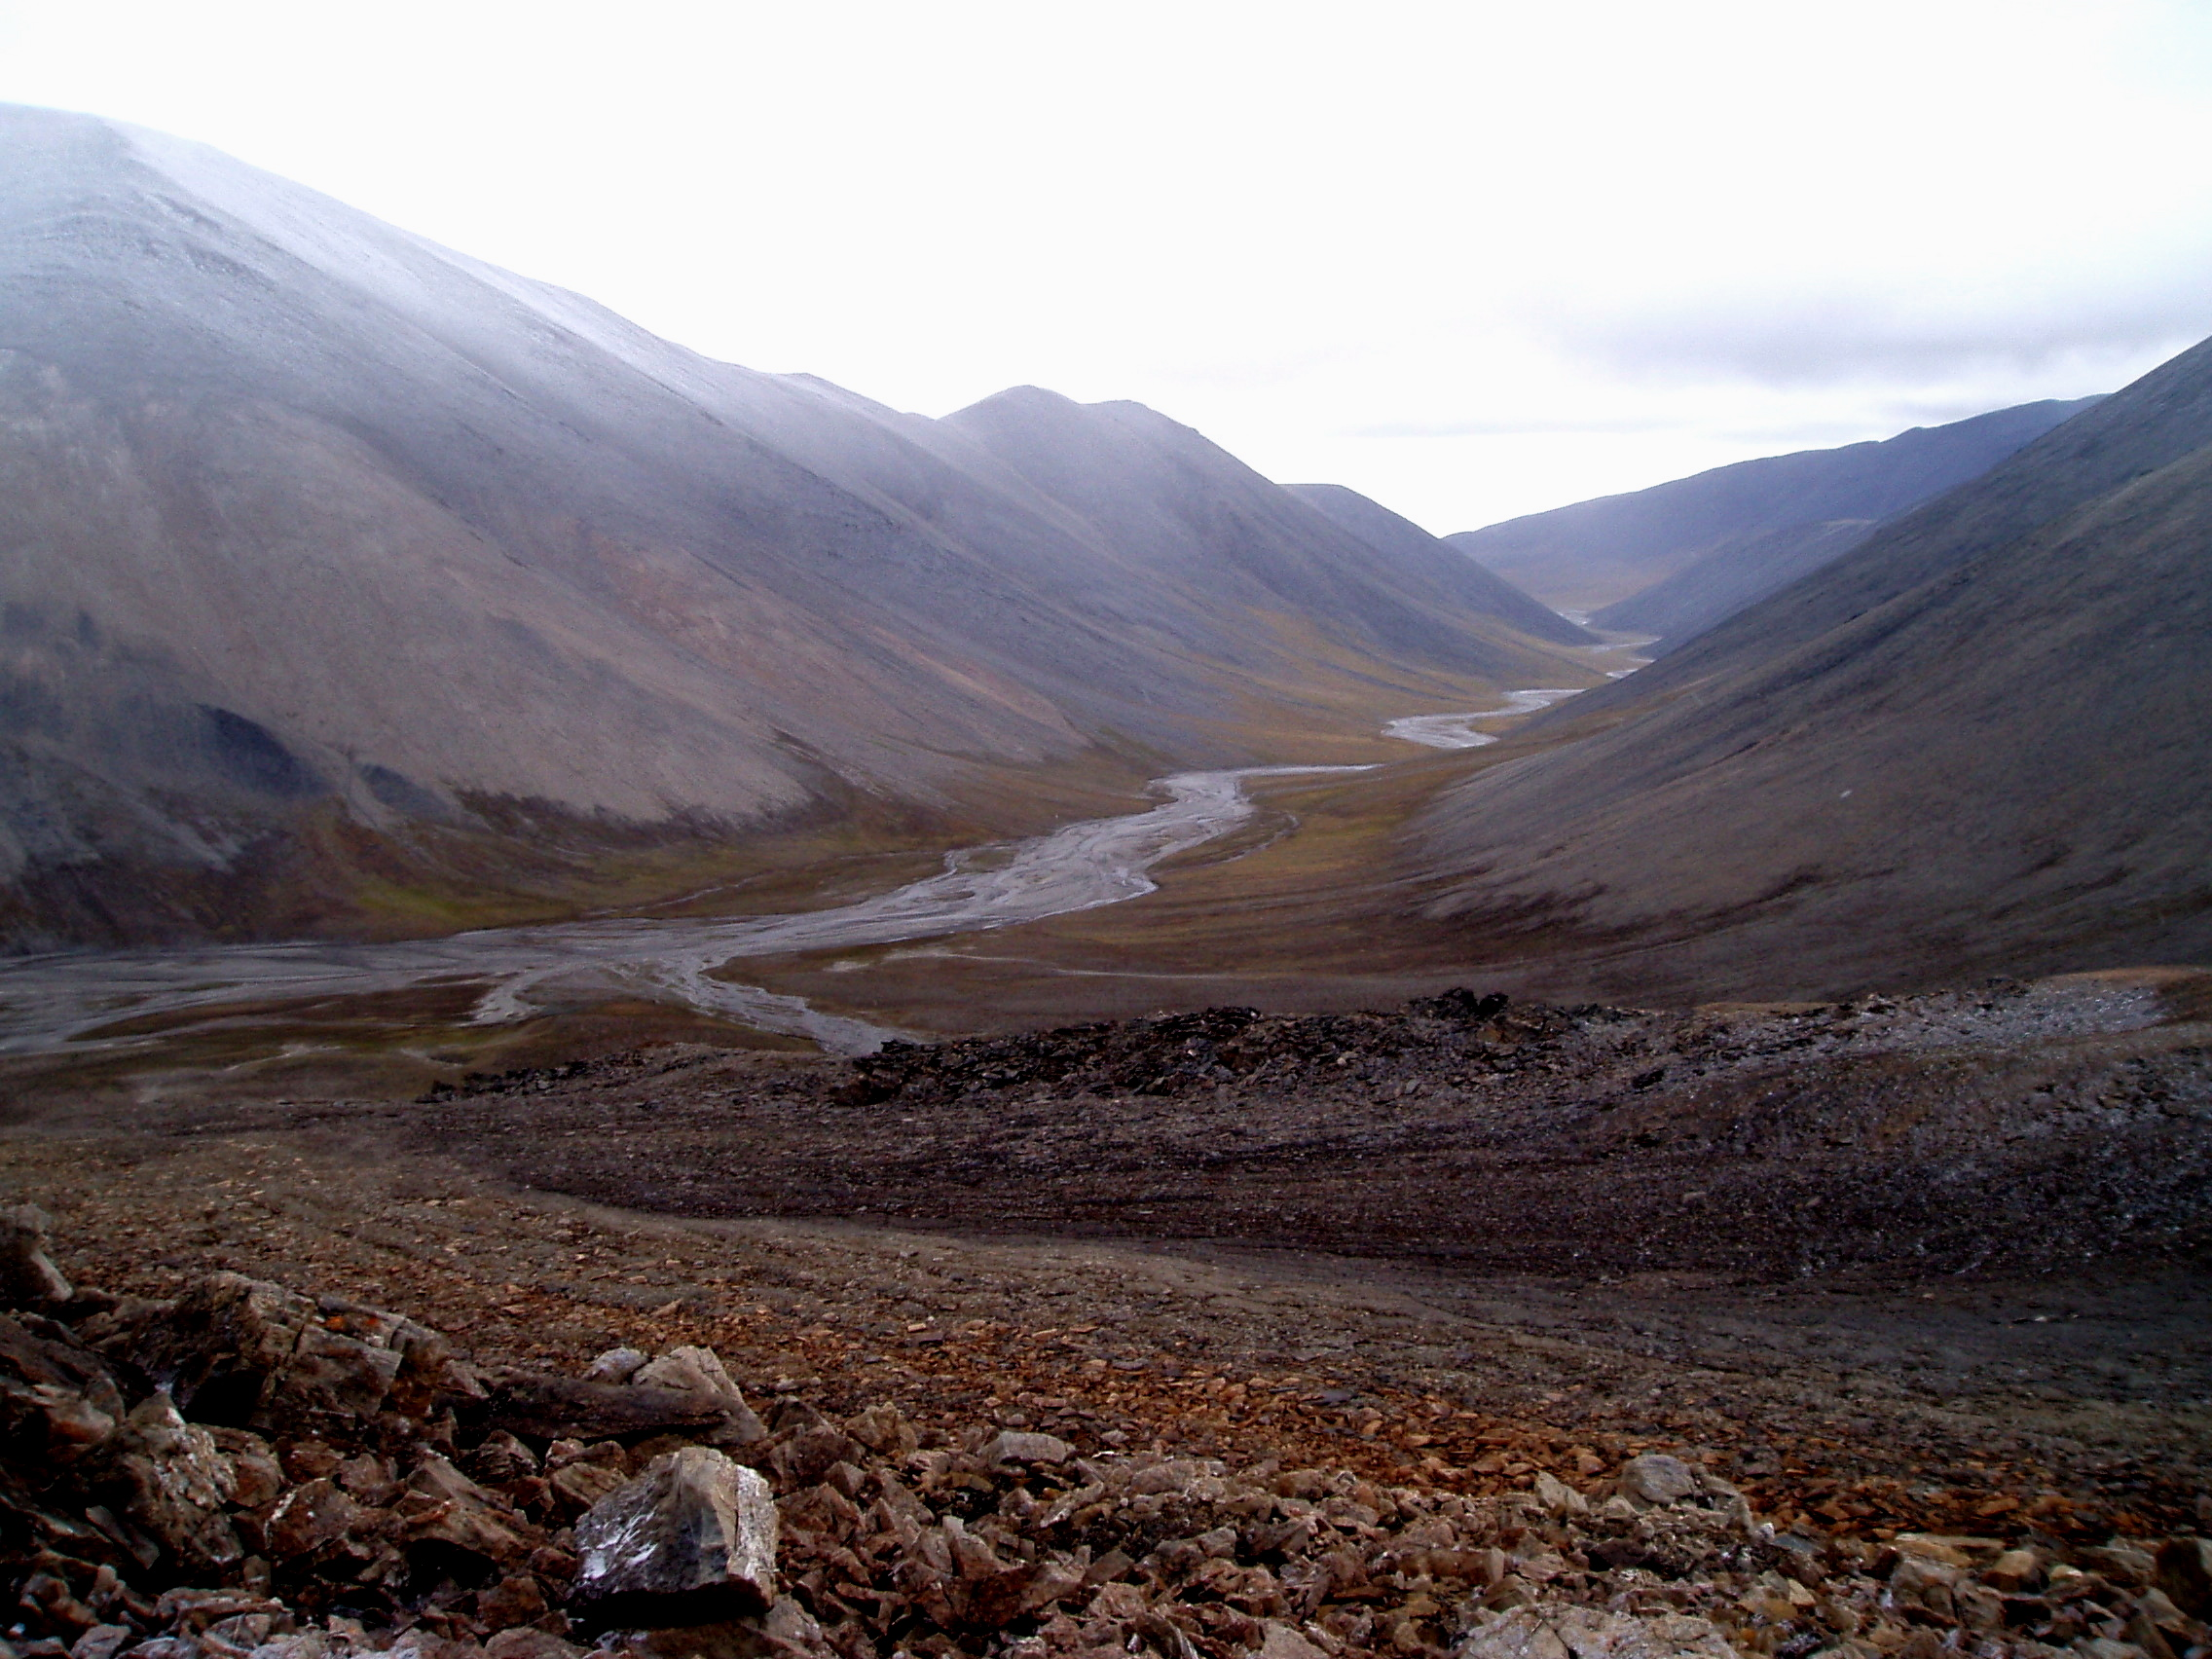 The Kishnikov (Predator) River on Wrangel Island. (c) Elizabeth Miller, Stanford University.